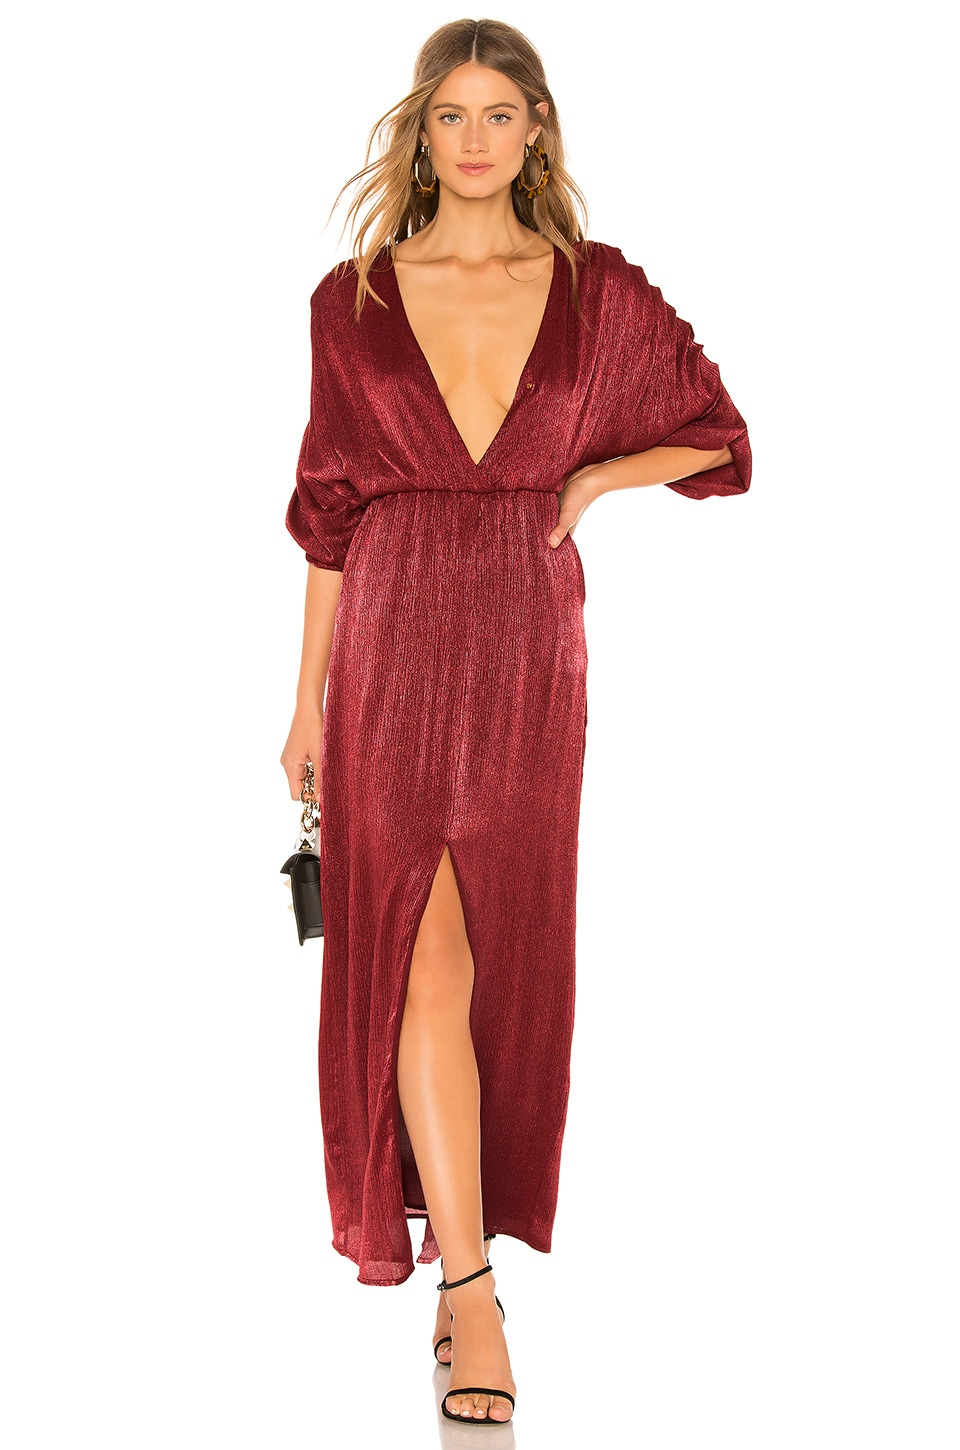 House of Harlow 1960 x REVOLVE Rhea Dress in Raspberry Red